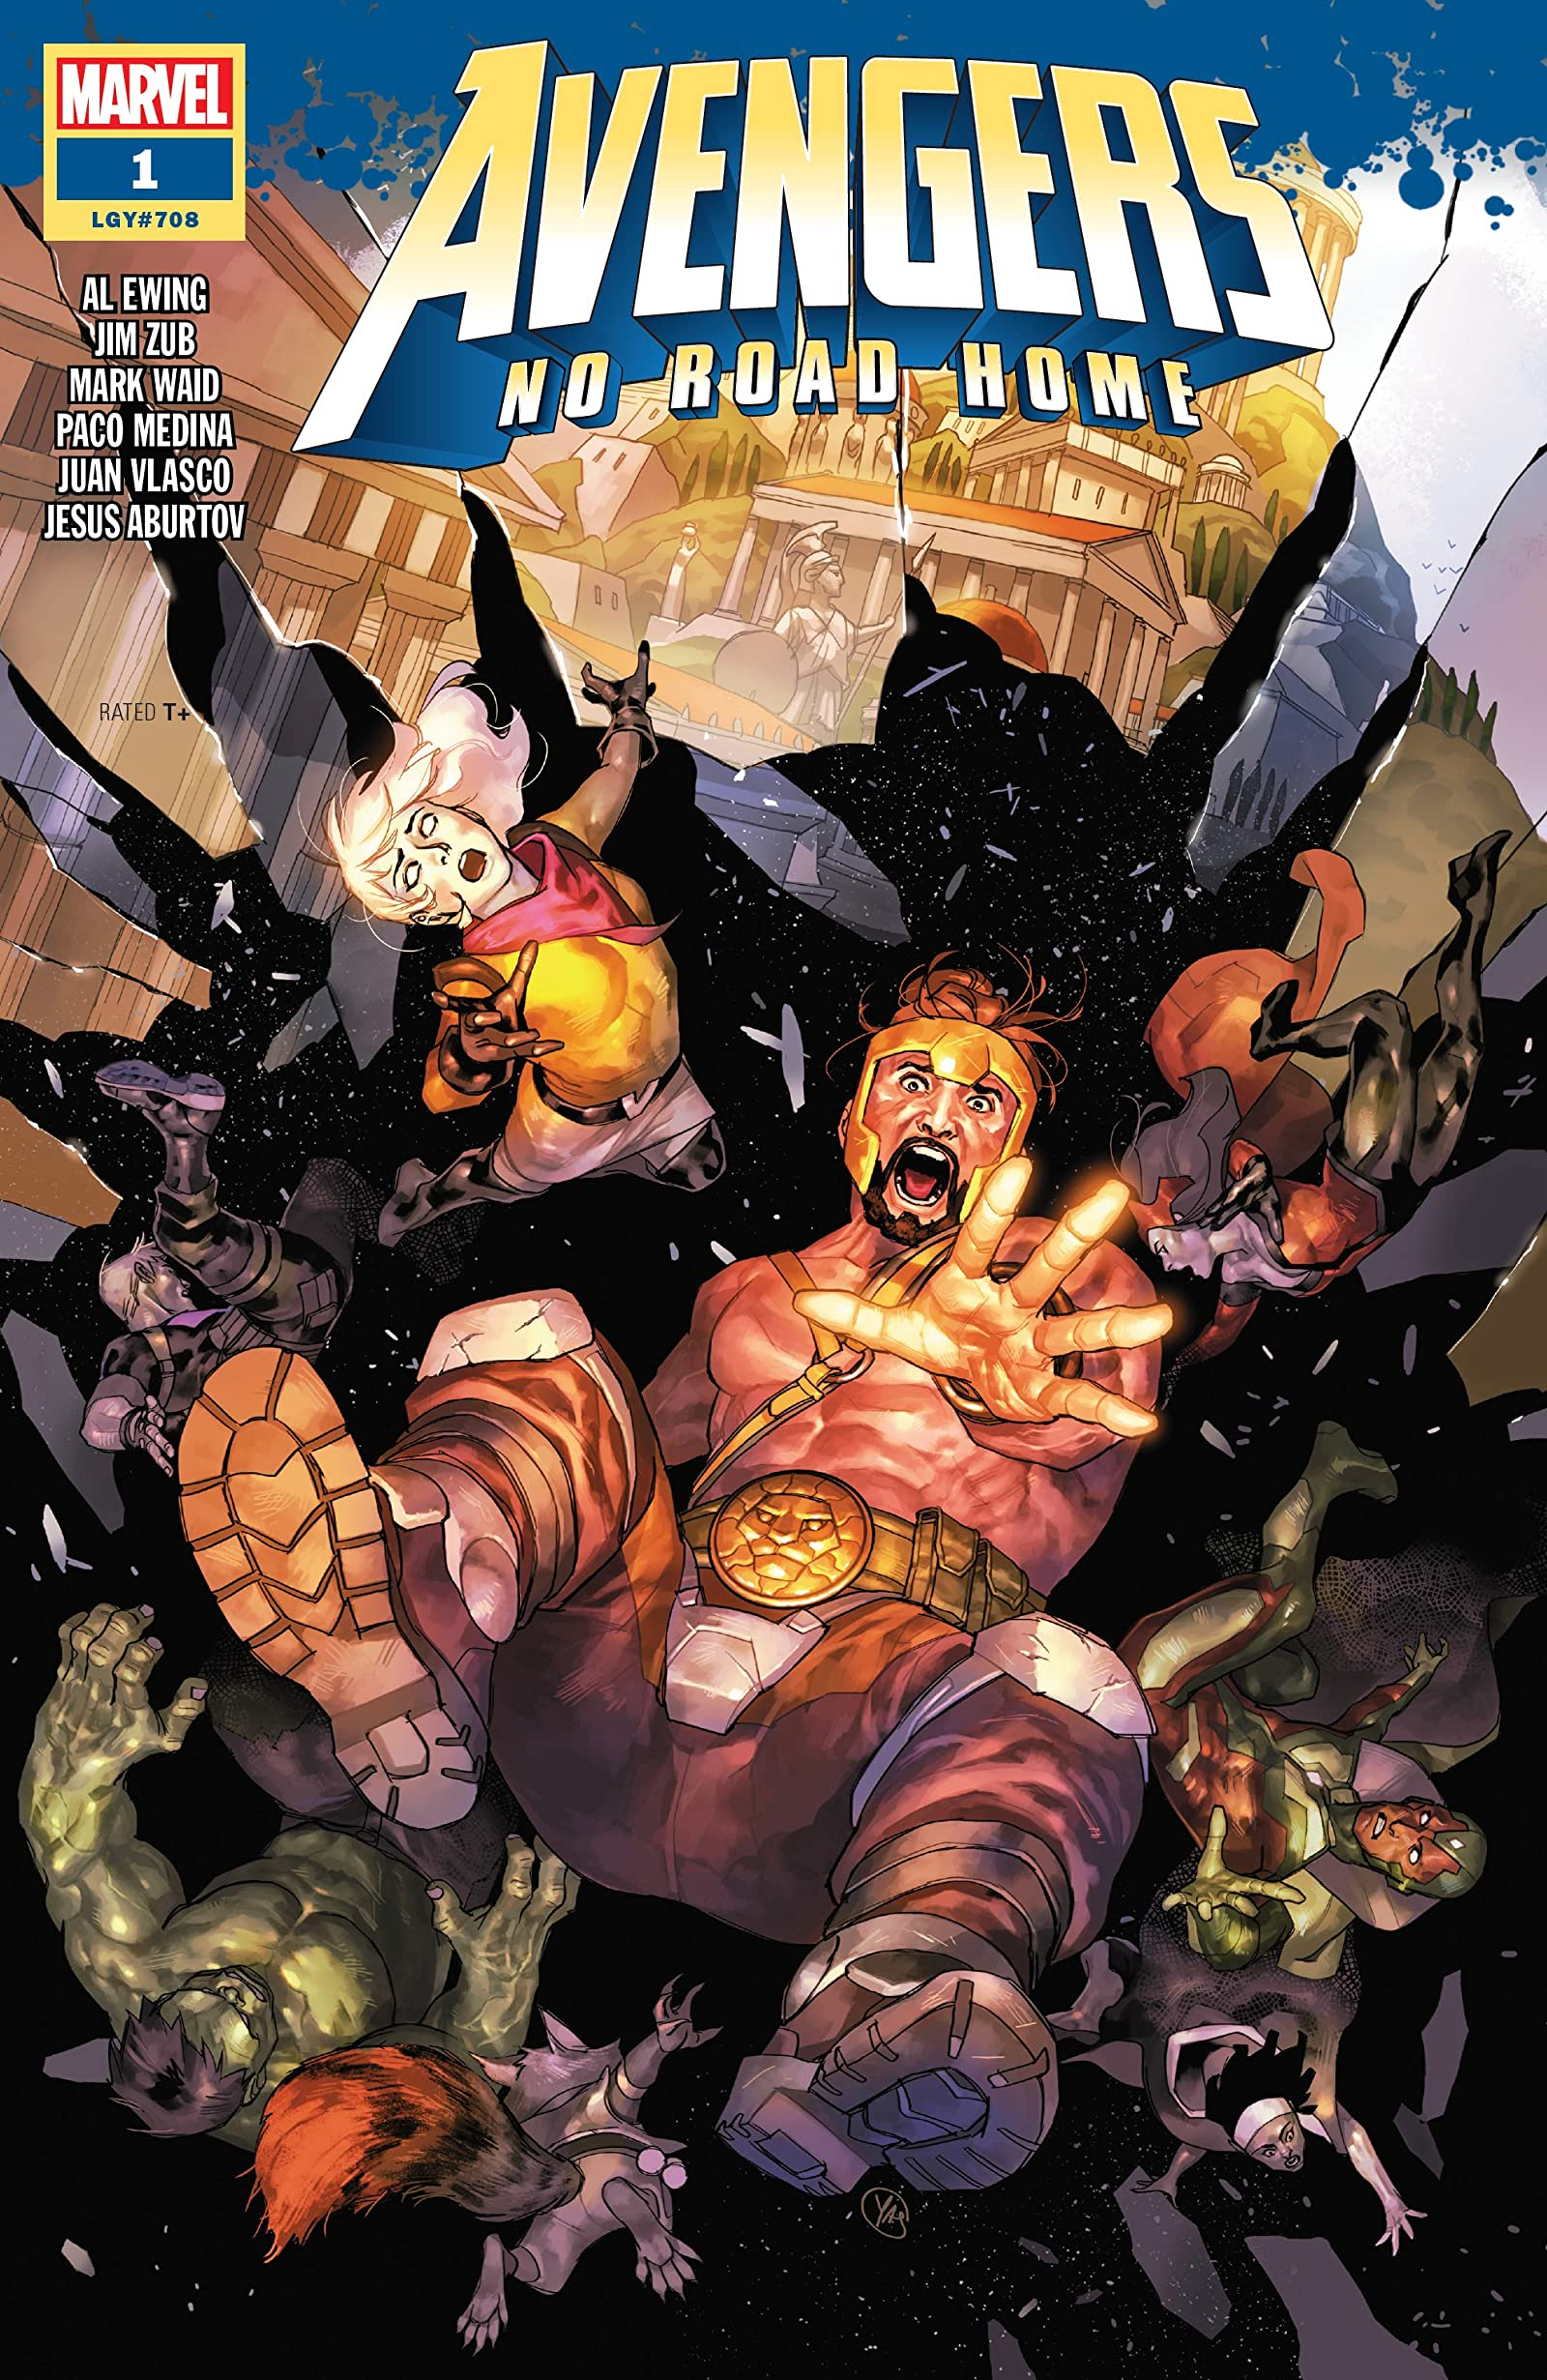 Avengers NM Marvel Vison Scarlet Witch Hercules Ewing 2019 No Road Home #10